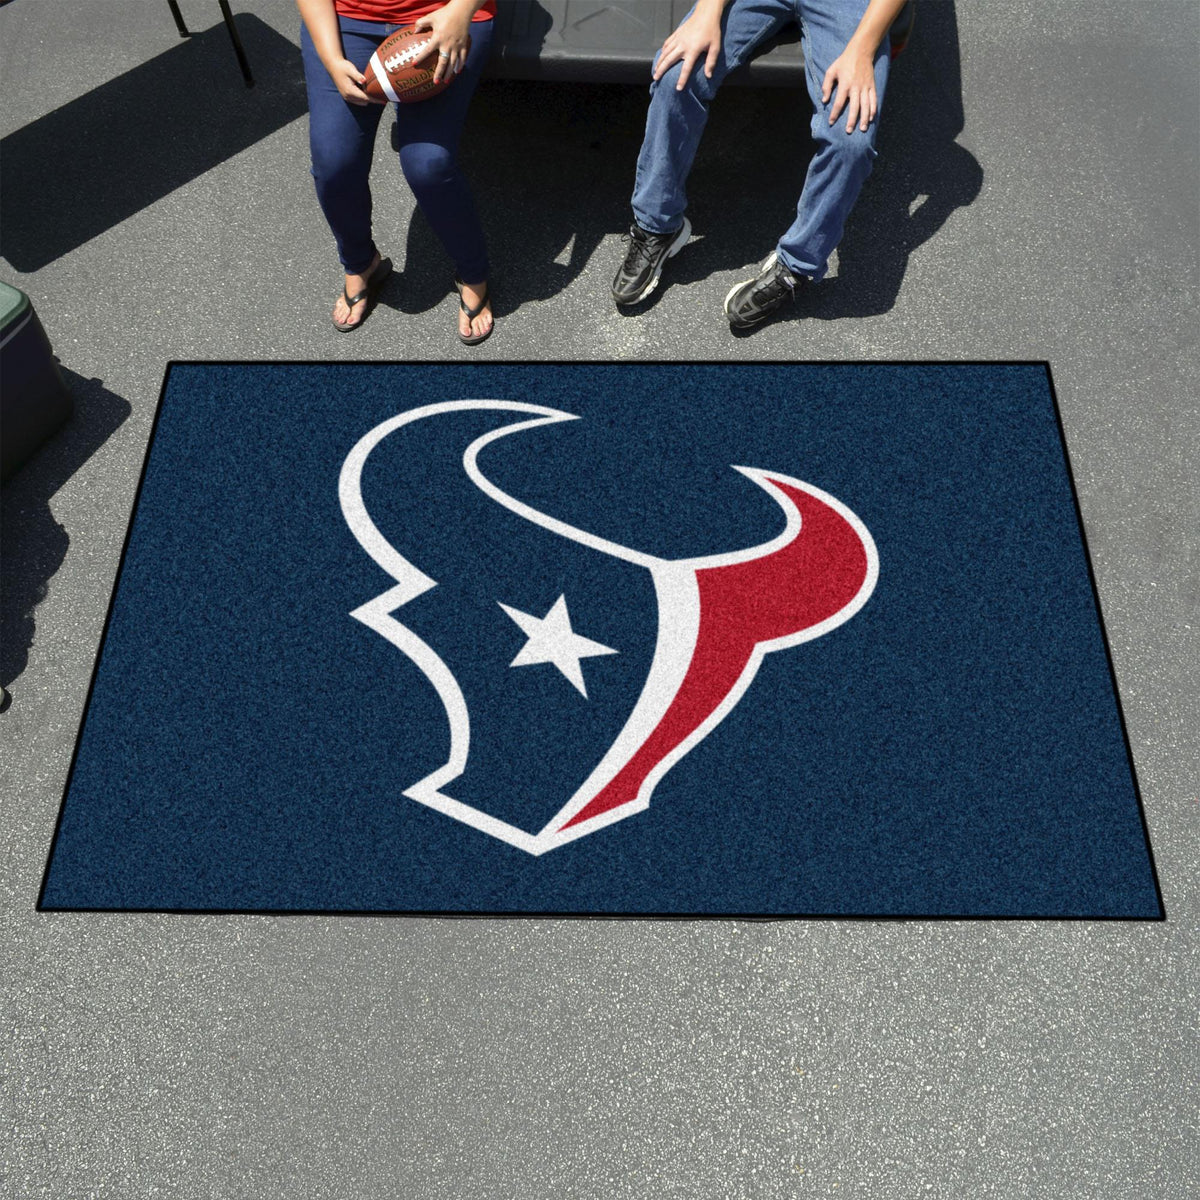 "NFL - Ulti-Mat, 59.5"" x 94.5"" NFL Mats, Rectangular Mats, Ulti-Mat, NFL, Home Fan Mats Houston Texans 2"